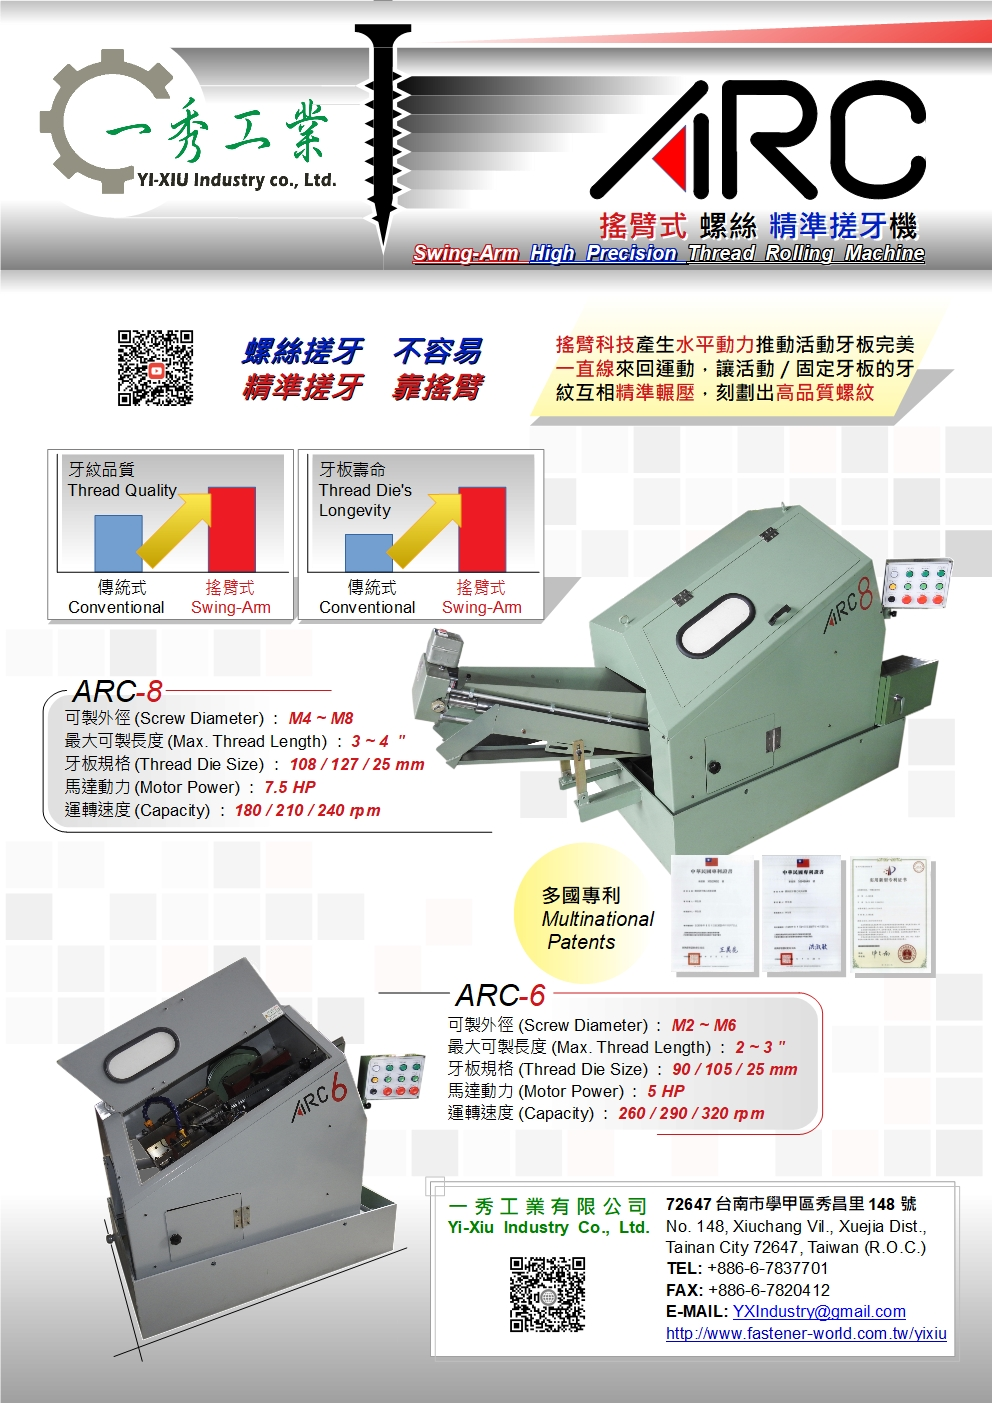 YI-XIU INDUSTRY CO., LTD._Online Catalogues